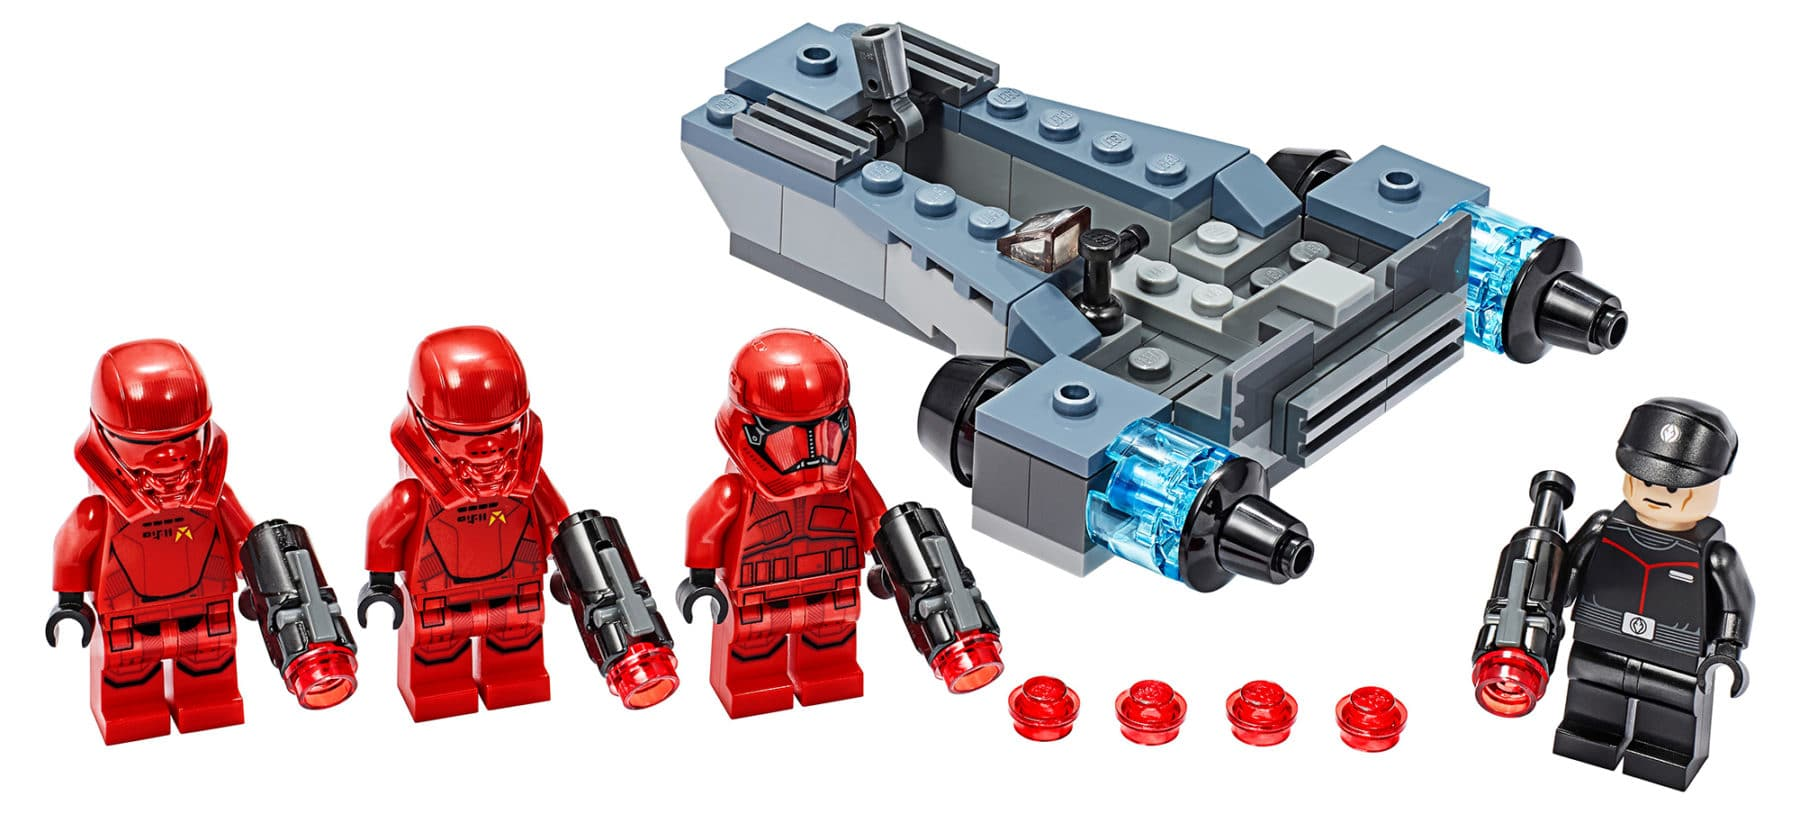 LEGO Star Wars 75266 Sith Trooper Battle Pack